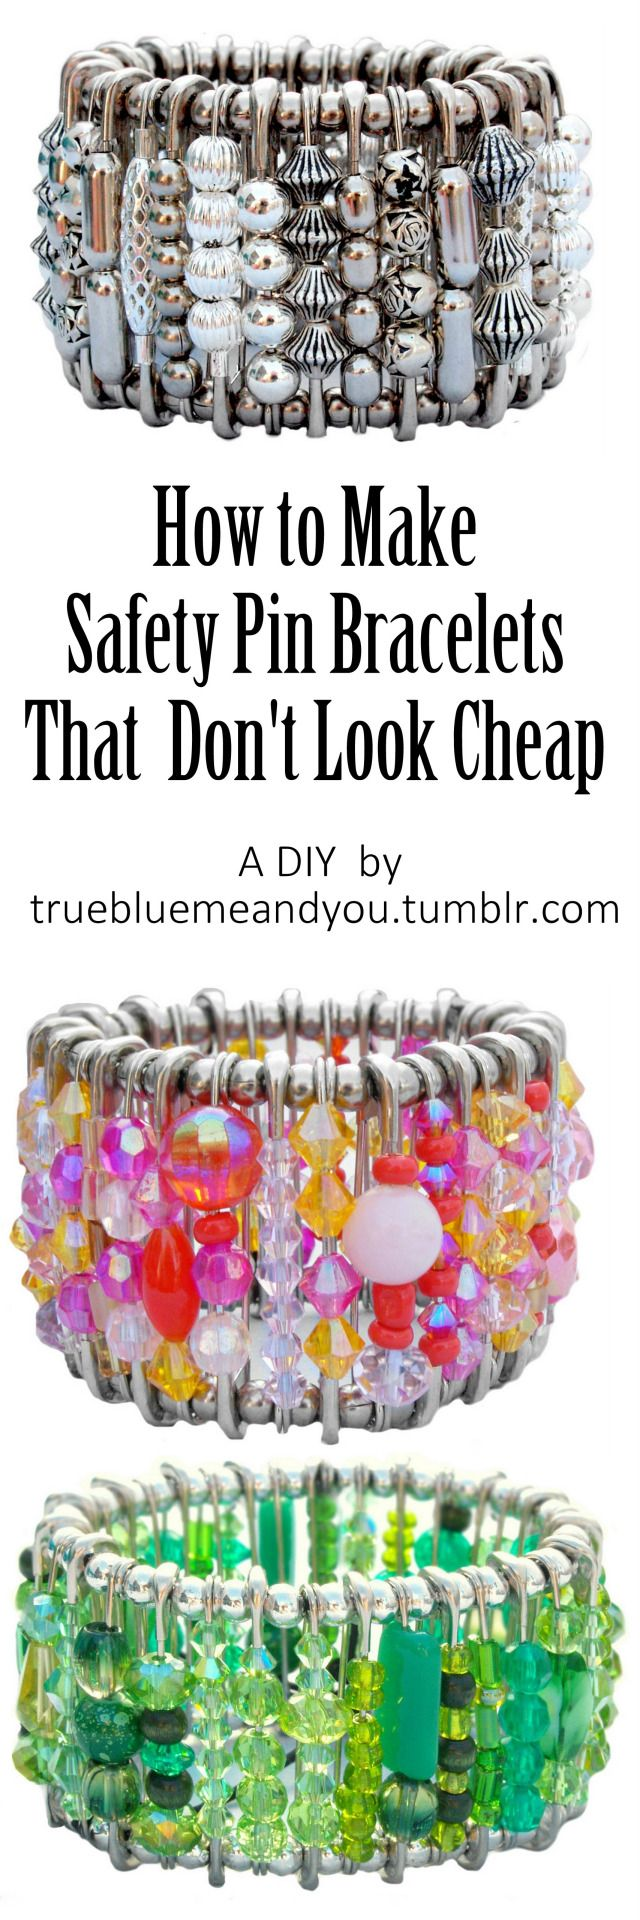 DIY Safety Pin Bracelets that Don't Look Cheap! Watch a short video on how to make a Safety Pin Bracelet from start to finish by Hannah for truebluemeandyou. My best friend Hannah (who made the Rubik's Cube video), also makes the best safety pin...